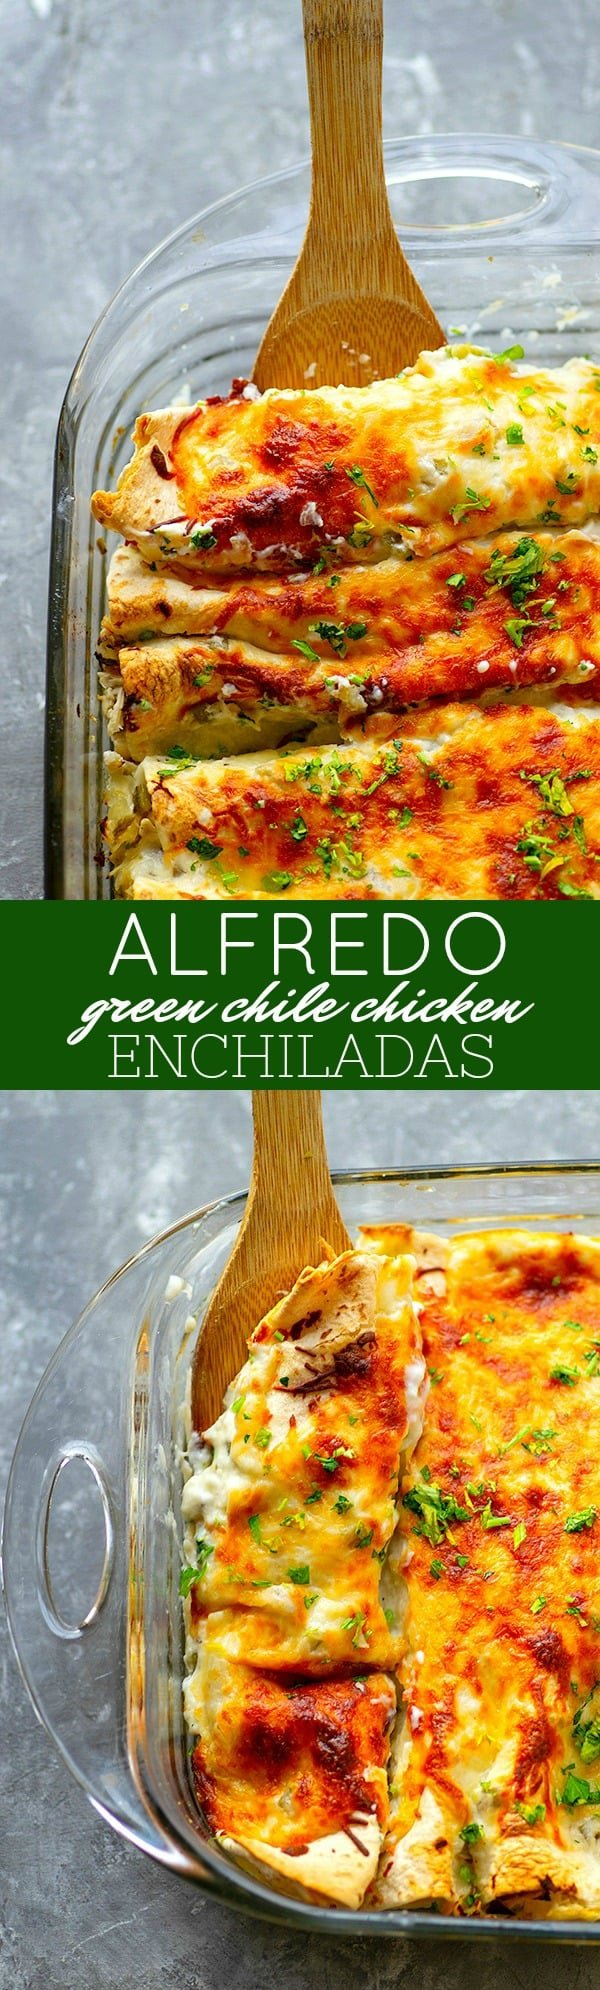 Alfredo Green Chile Chicken Enchiladas - Spicy green chile pulled chicken and a creamy white alfredo sauce are a DREAMY combo in these cozy, cheesy green chile chicken enchiladas! Use leftover chicken for MAXIMUM ease.